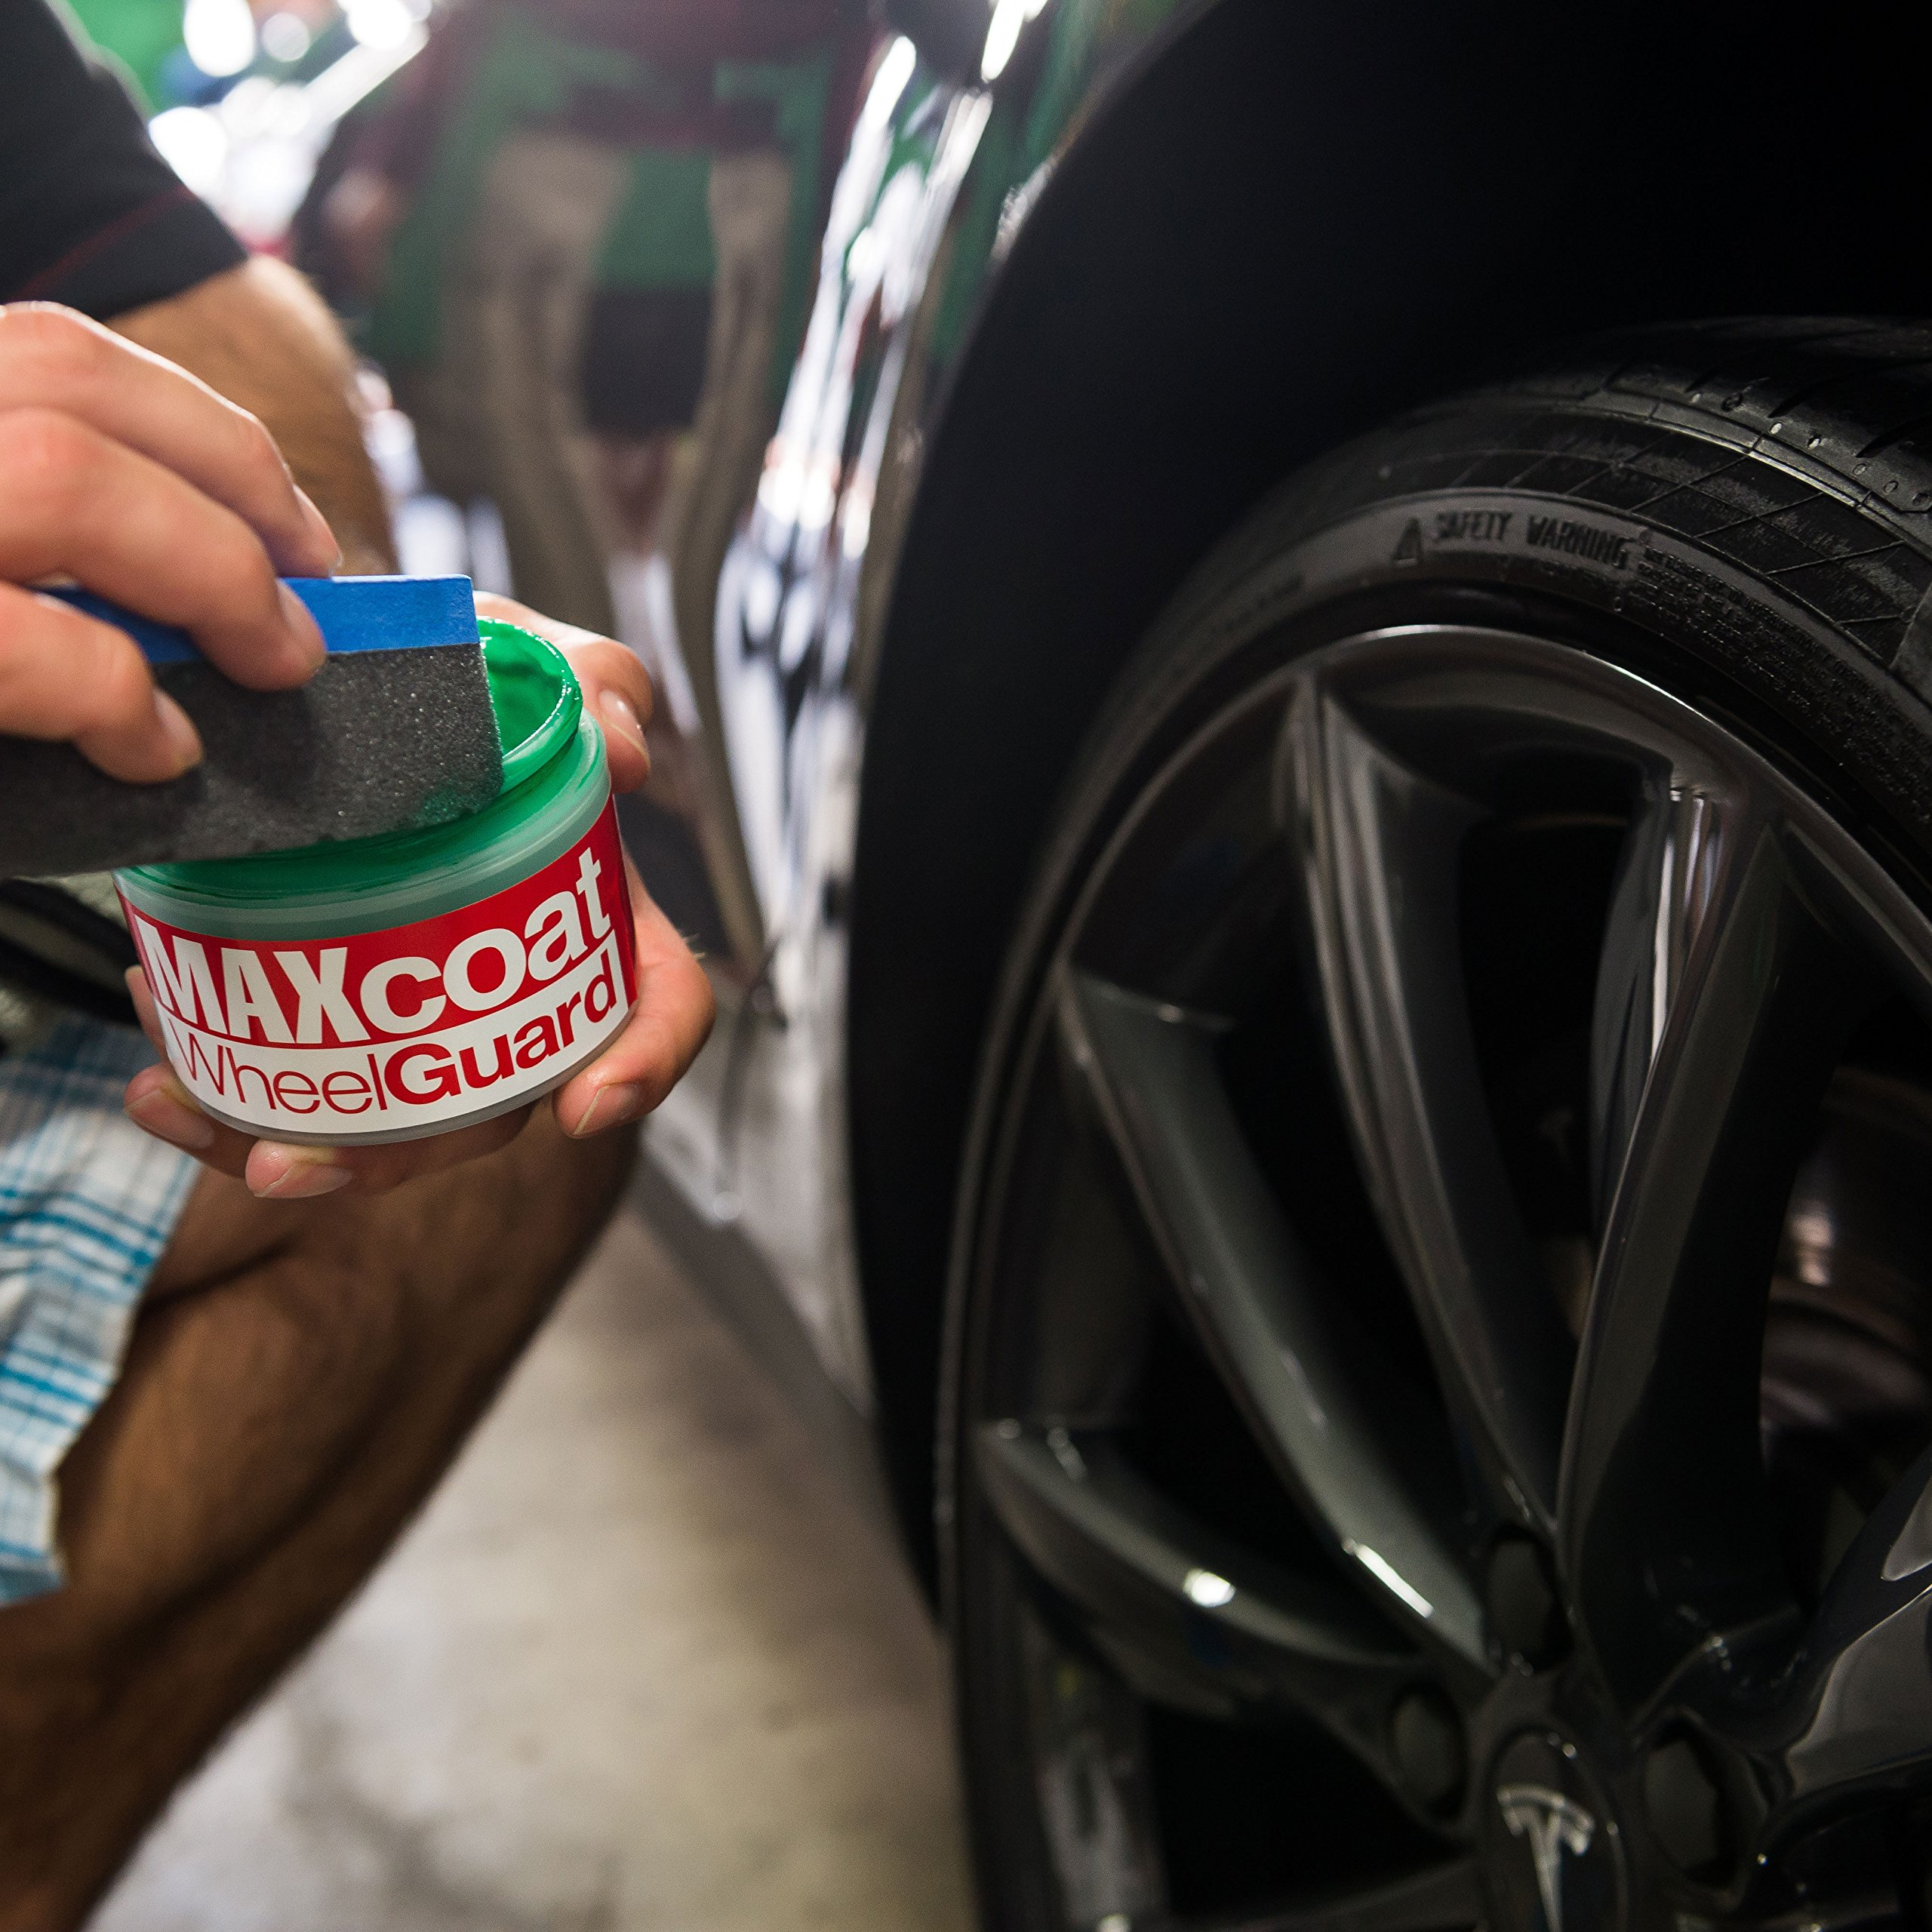 Chemical Guys WAC_303 8-Ounce Wheel Guard Rim and Wheel Sealant by Chemical Guys (Image #6)